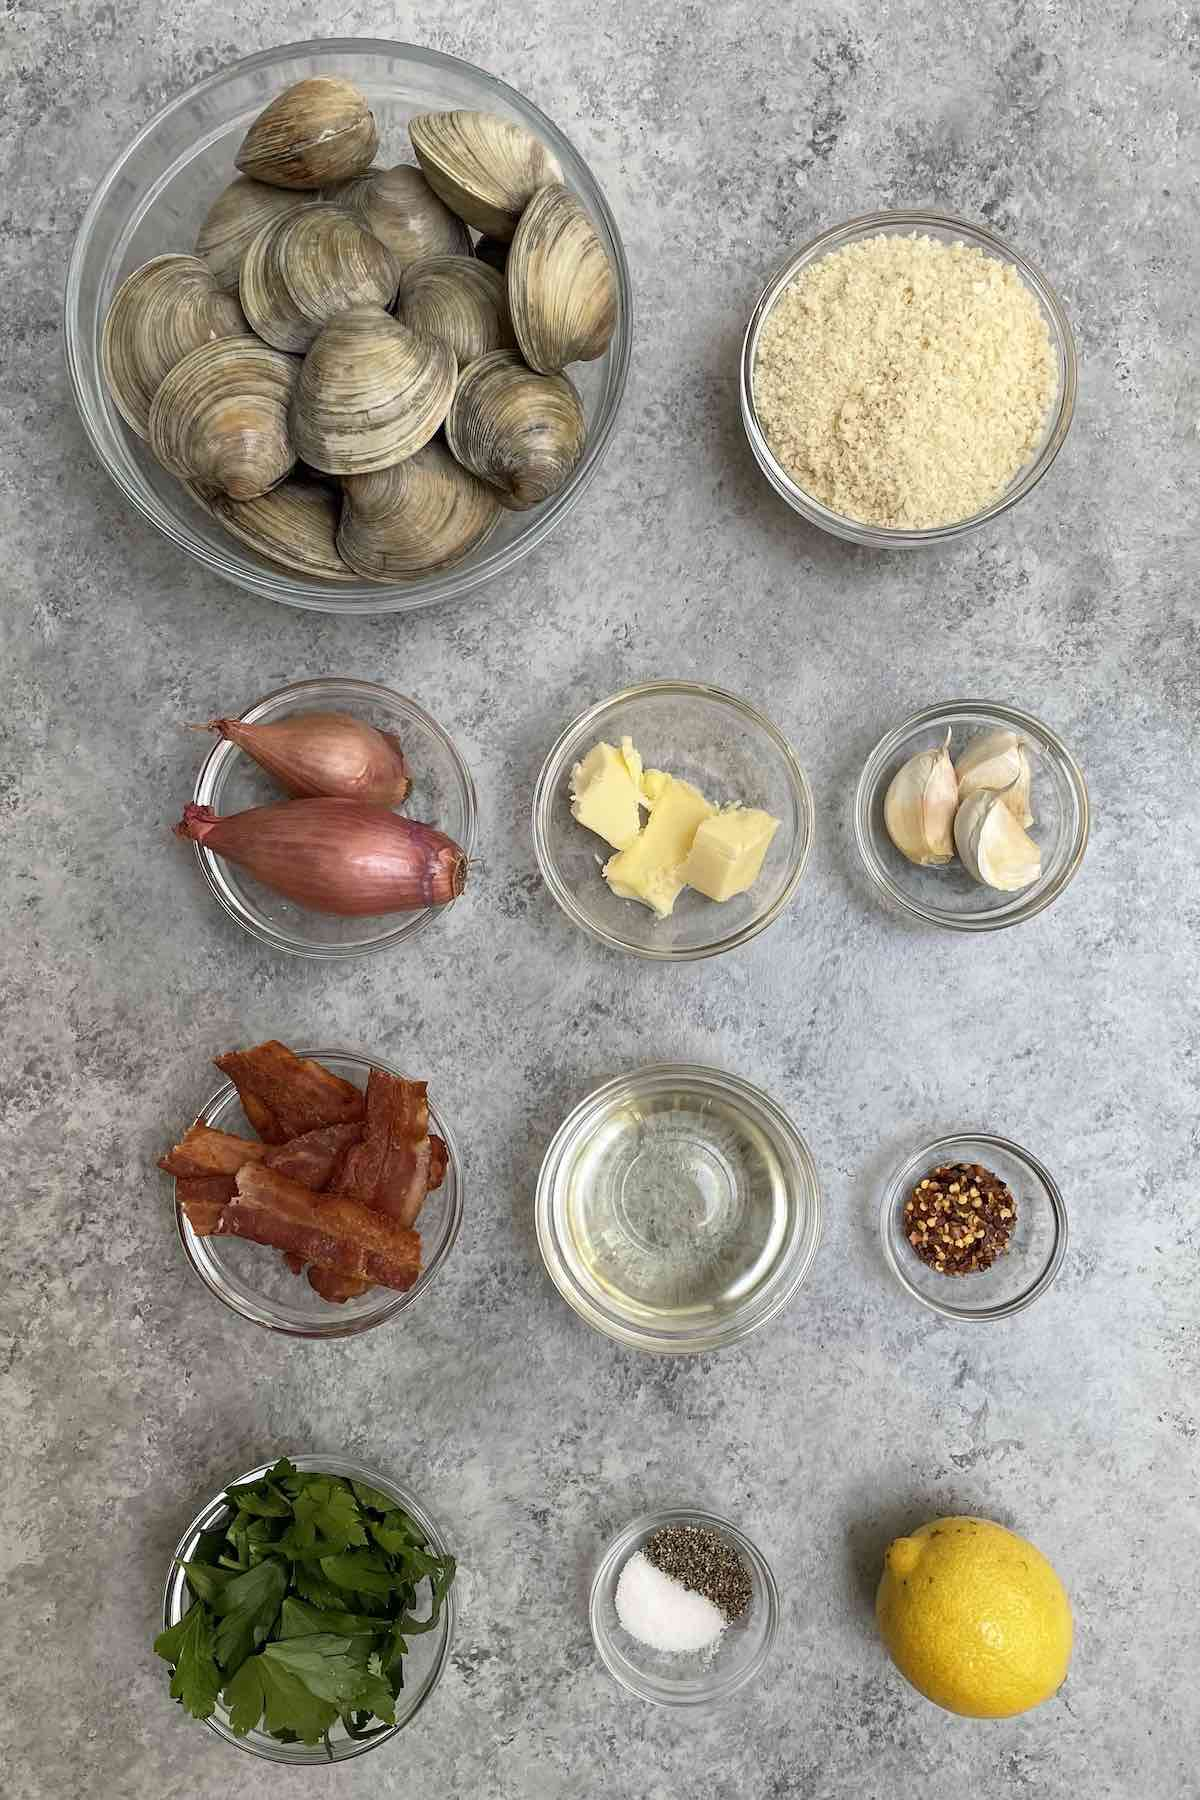 Ingredients for clams casino